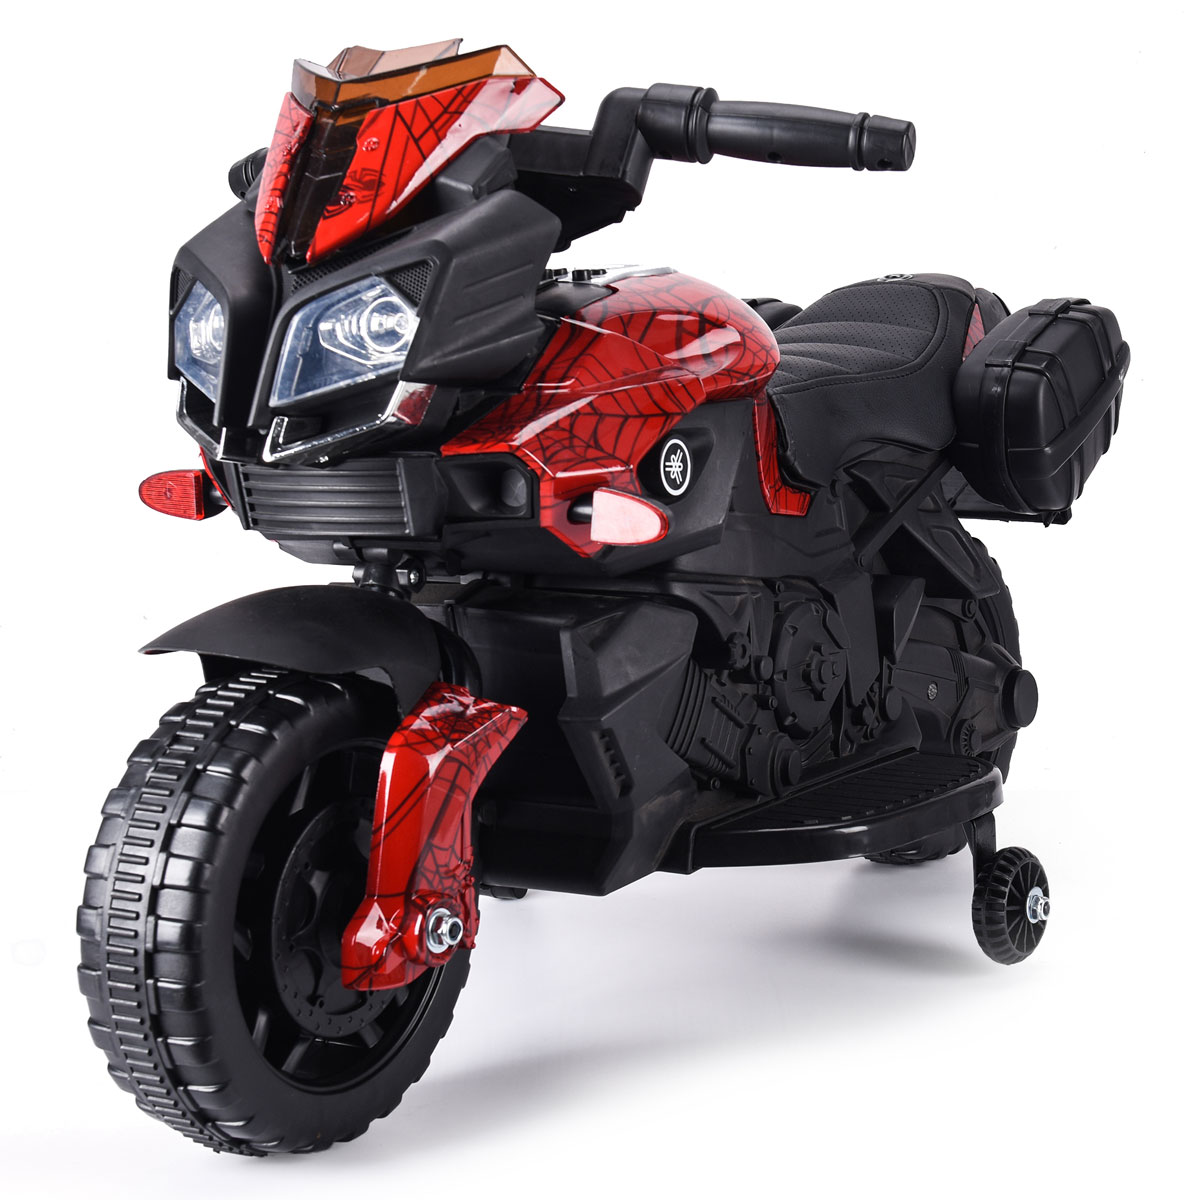 6V Kids Ride On Motorcycle Car Battery Powered 4 Wheel Bicycle Electric Toy Red by Jaxpety